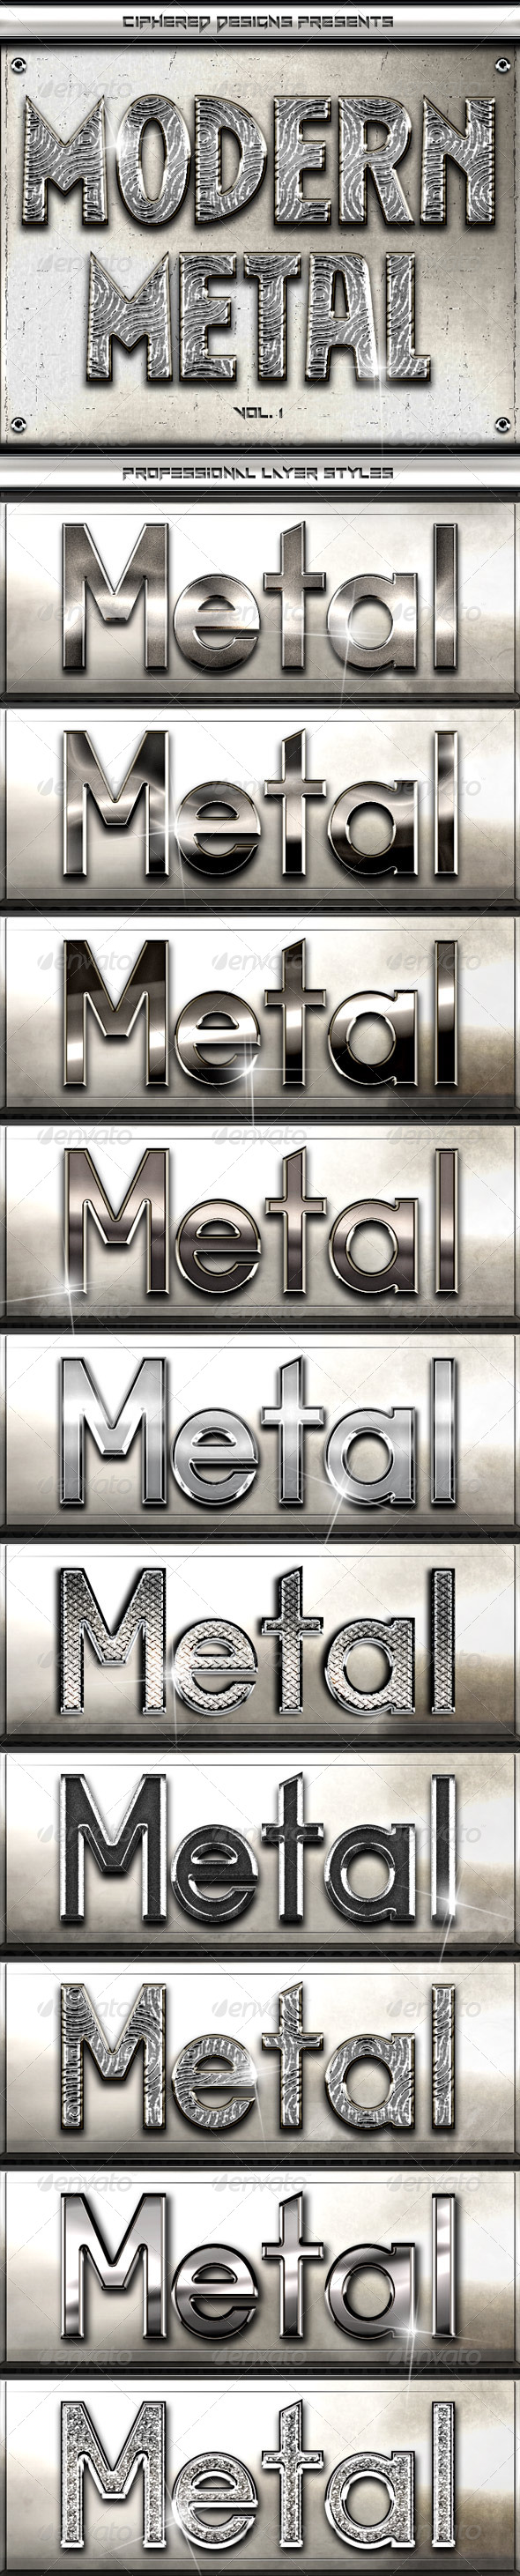 GraphicRiver Modern Metal Professional Layer Styles 5141931